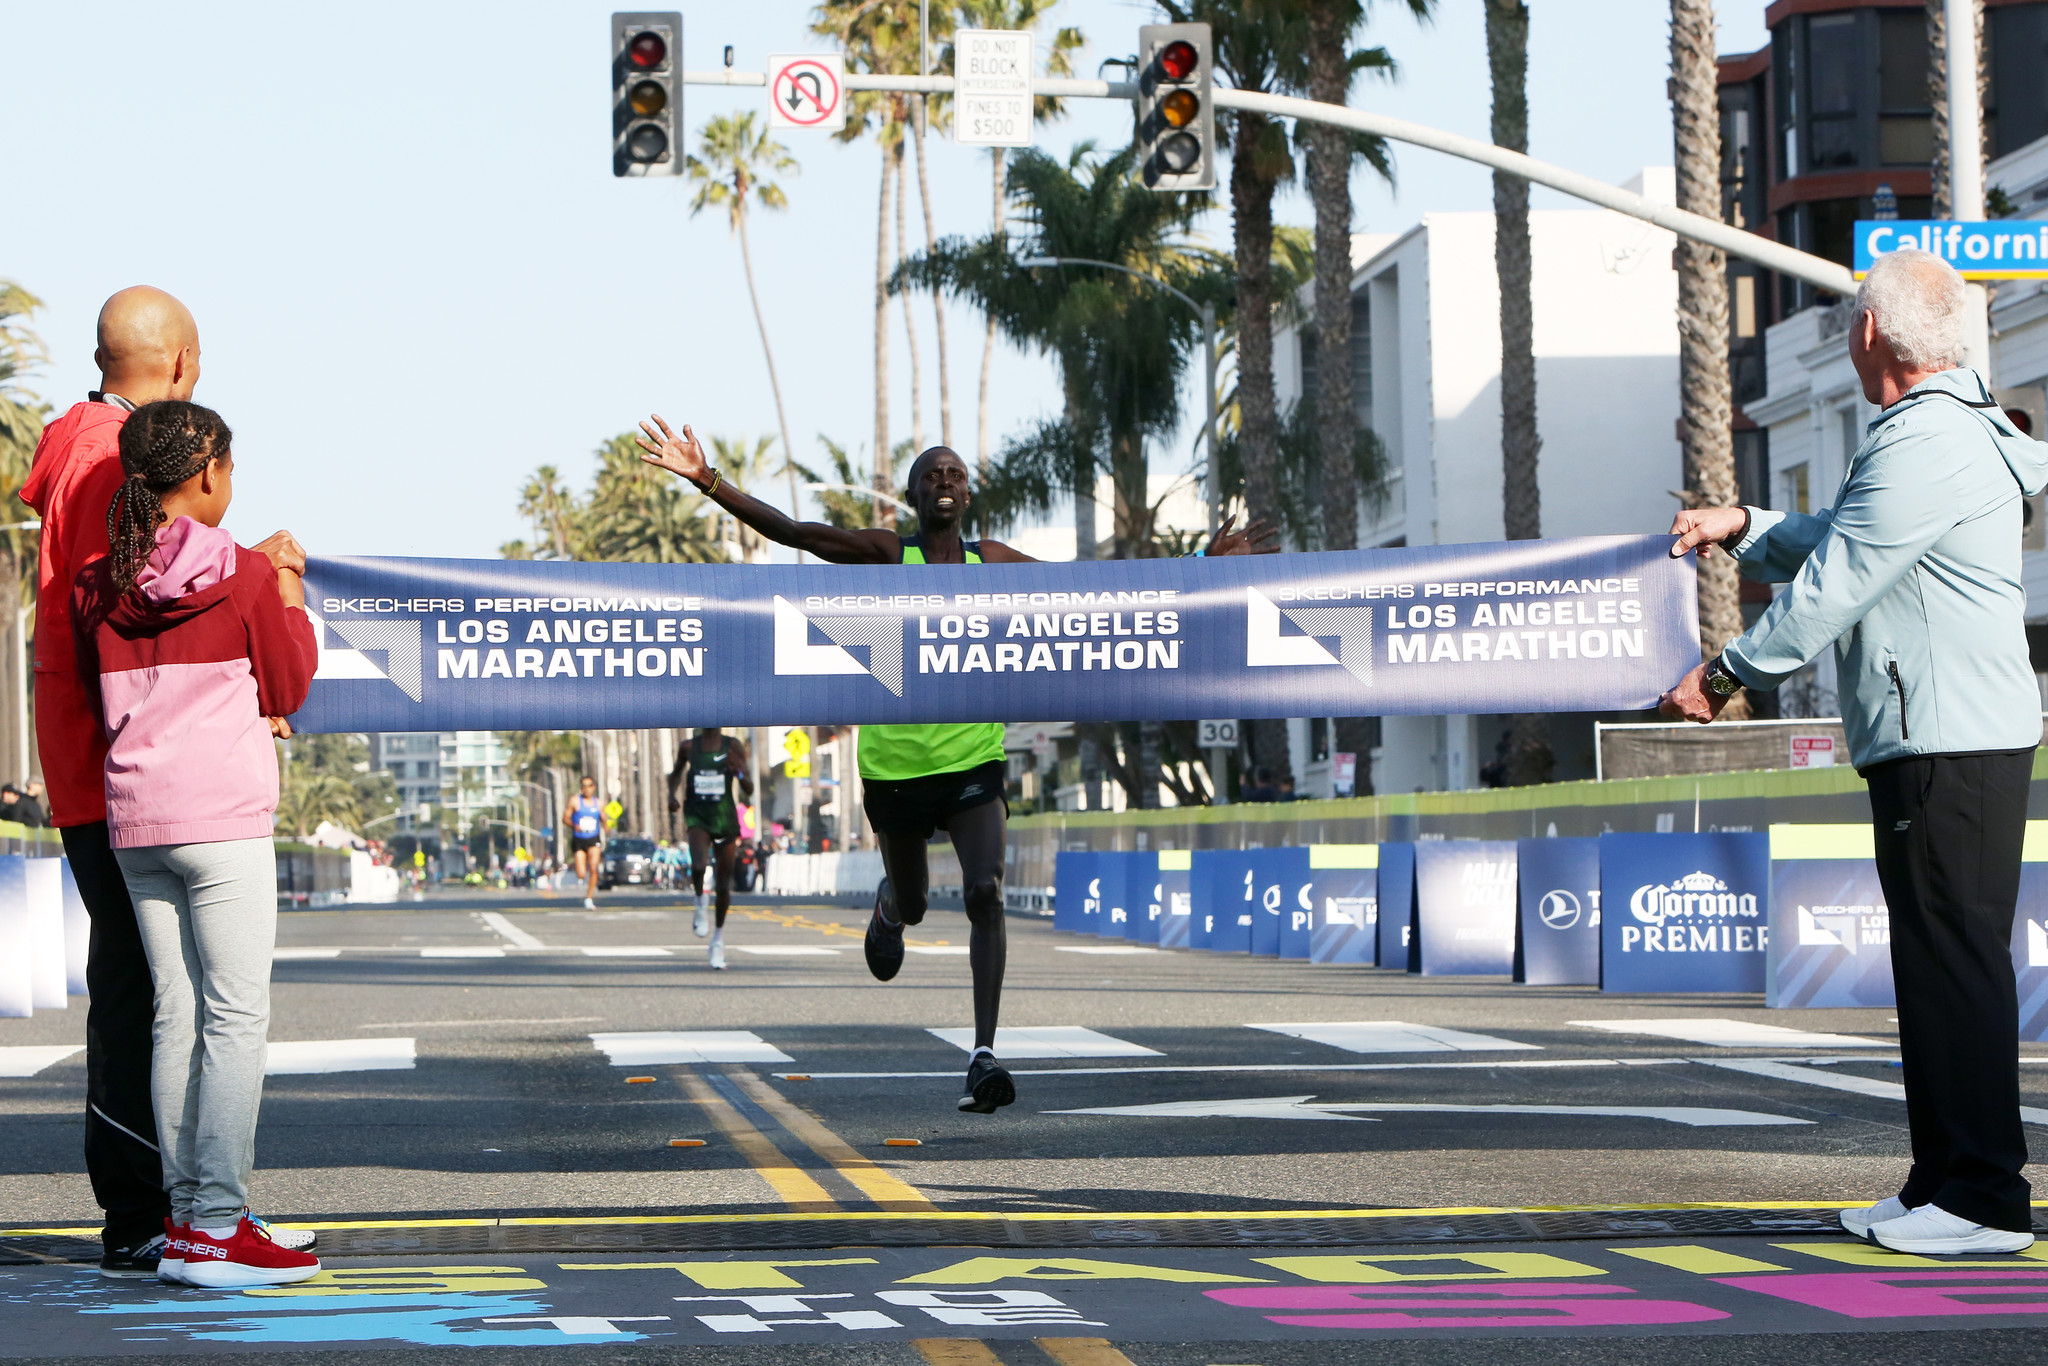 LOS ANGELES, CA-MARCH 24, 2019: Runner Elisha Barno comes in first during the Los Angeles Marathon o